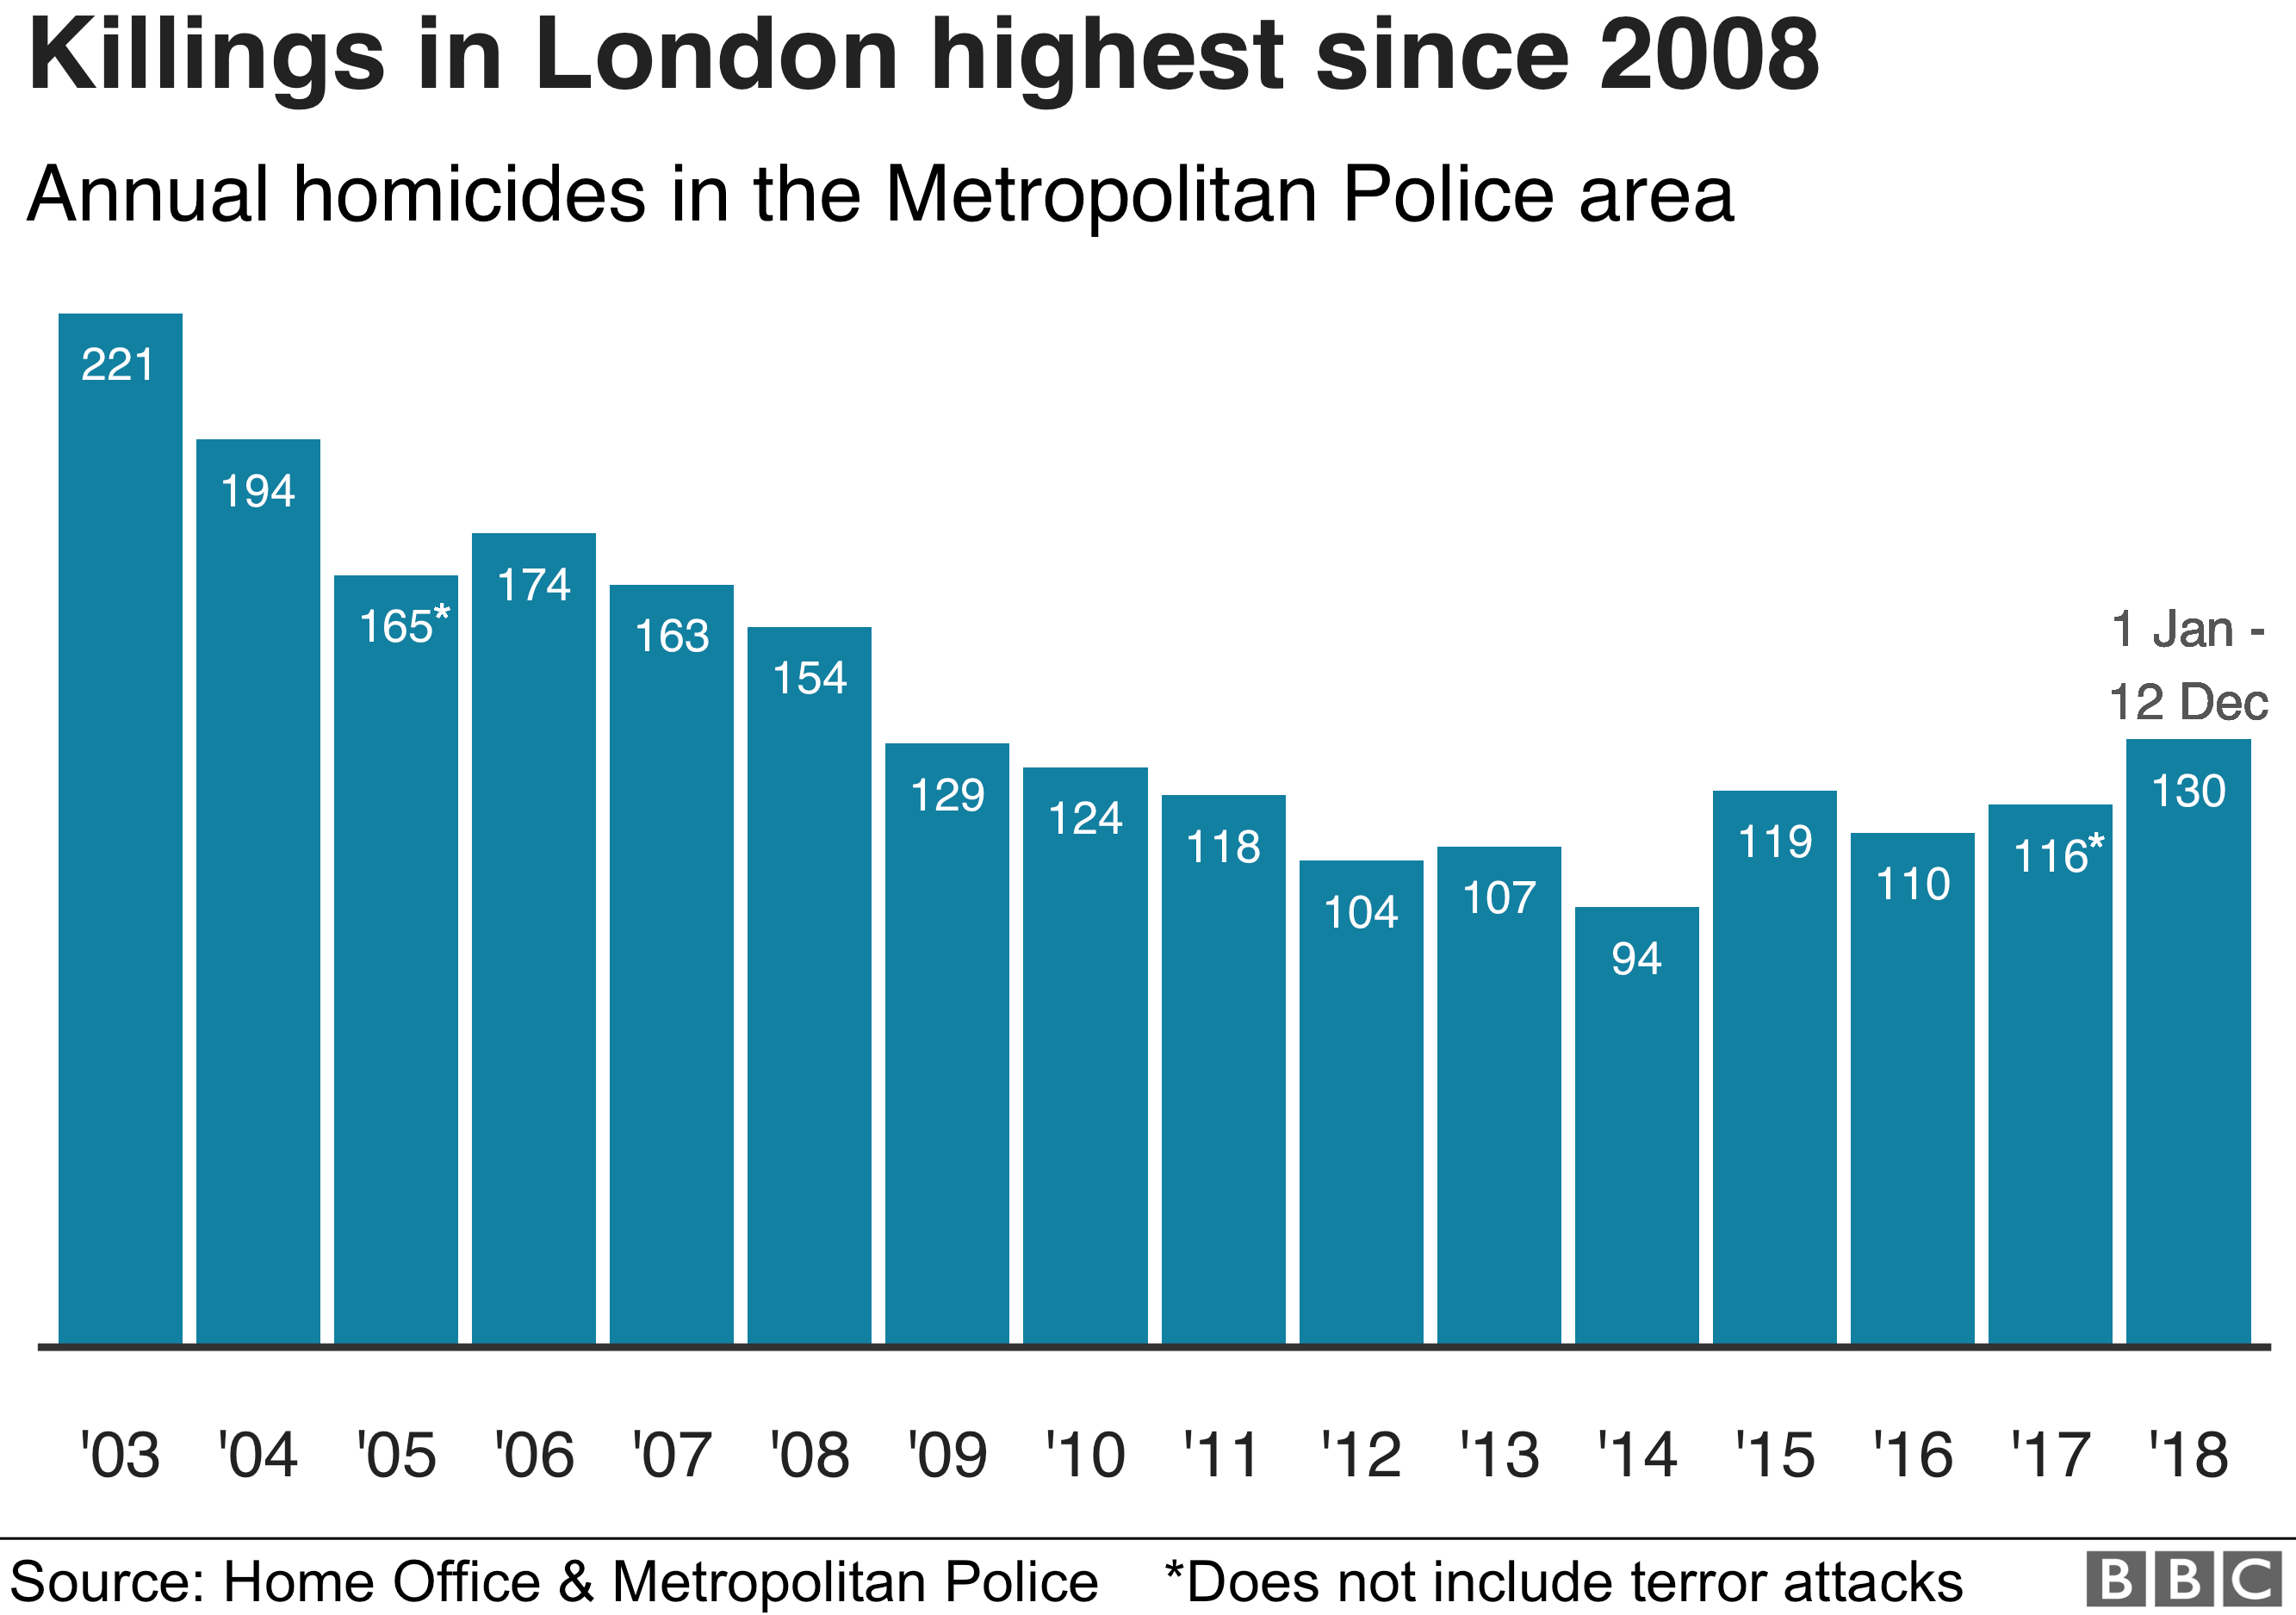 Killings in London reached 130 on 12th Dec. This is the highest number of killings in one year since 2008.